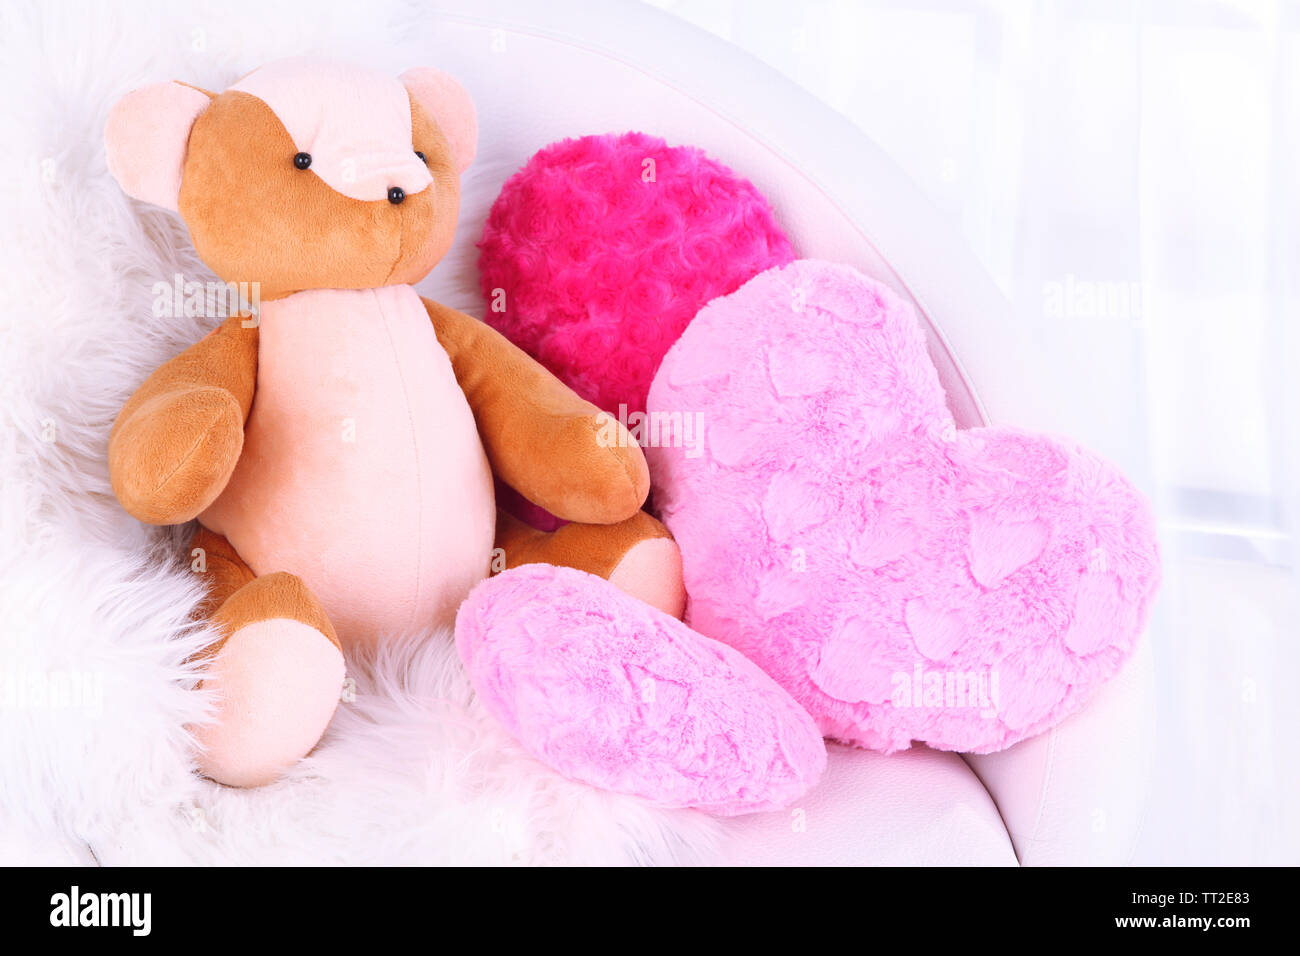 Bear toy with pillows on armchair in room - Stock Image